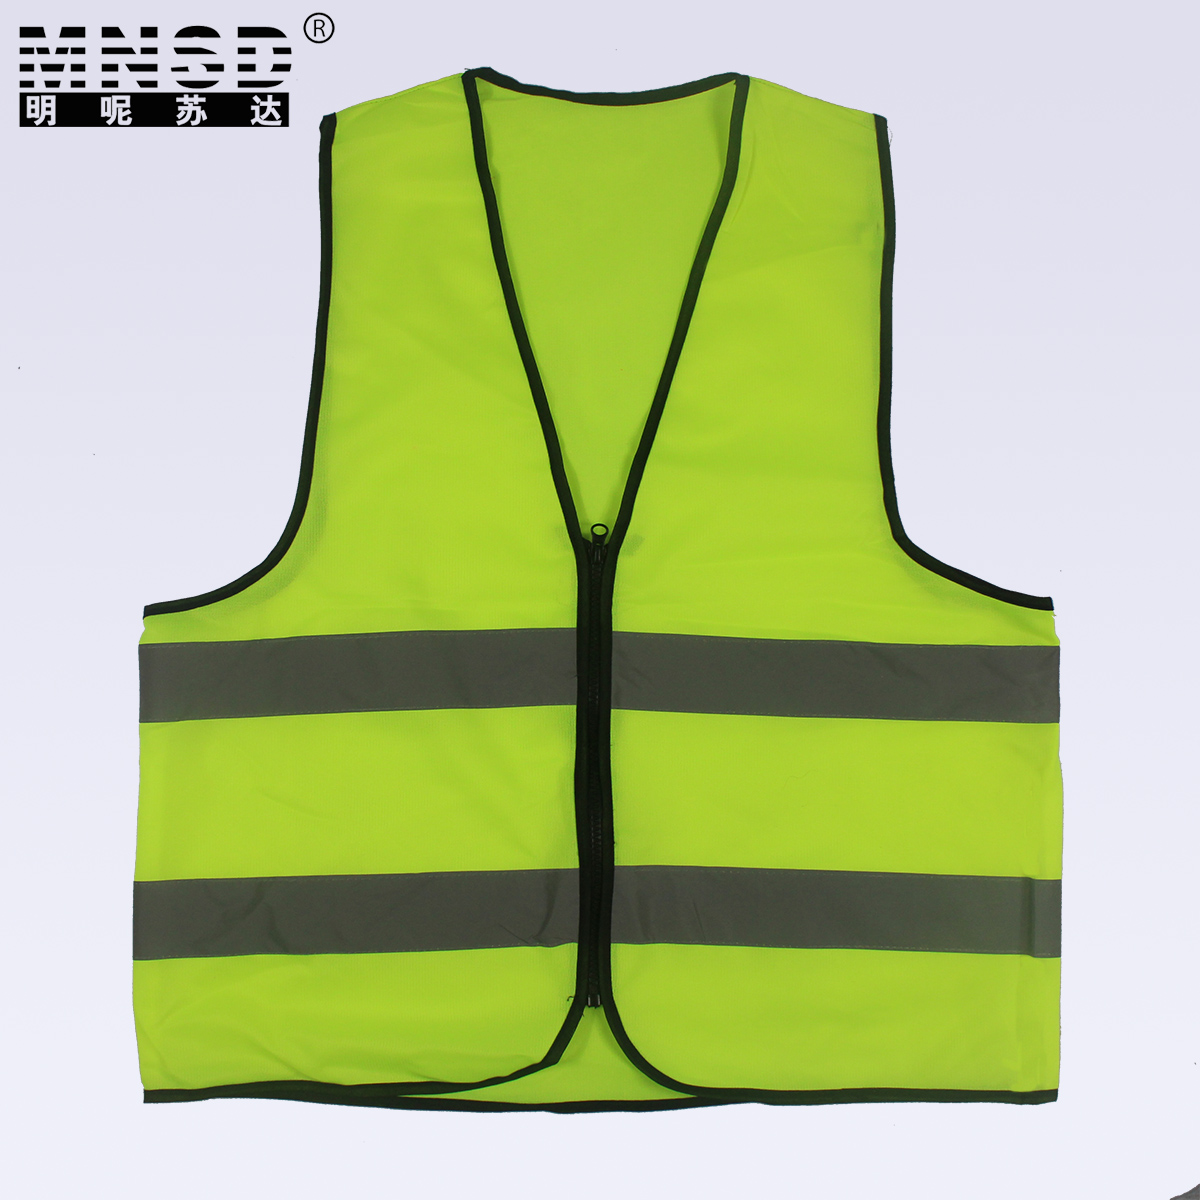 popular yellow safety vest buy cheap yellow safety vest lots from china yellow safety vest. Black Bedroom Furniture Sets. Home Design Ideas